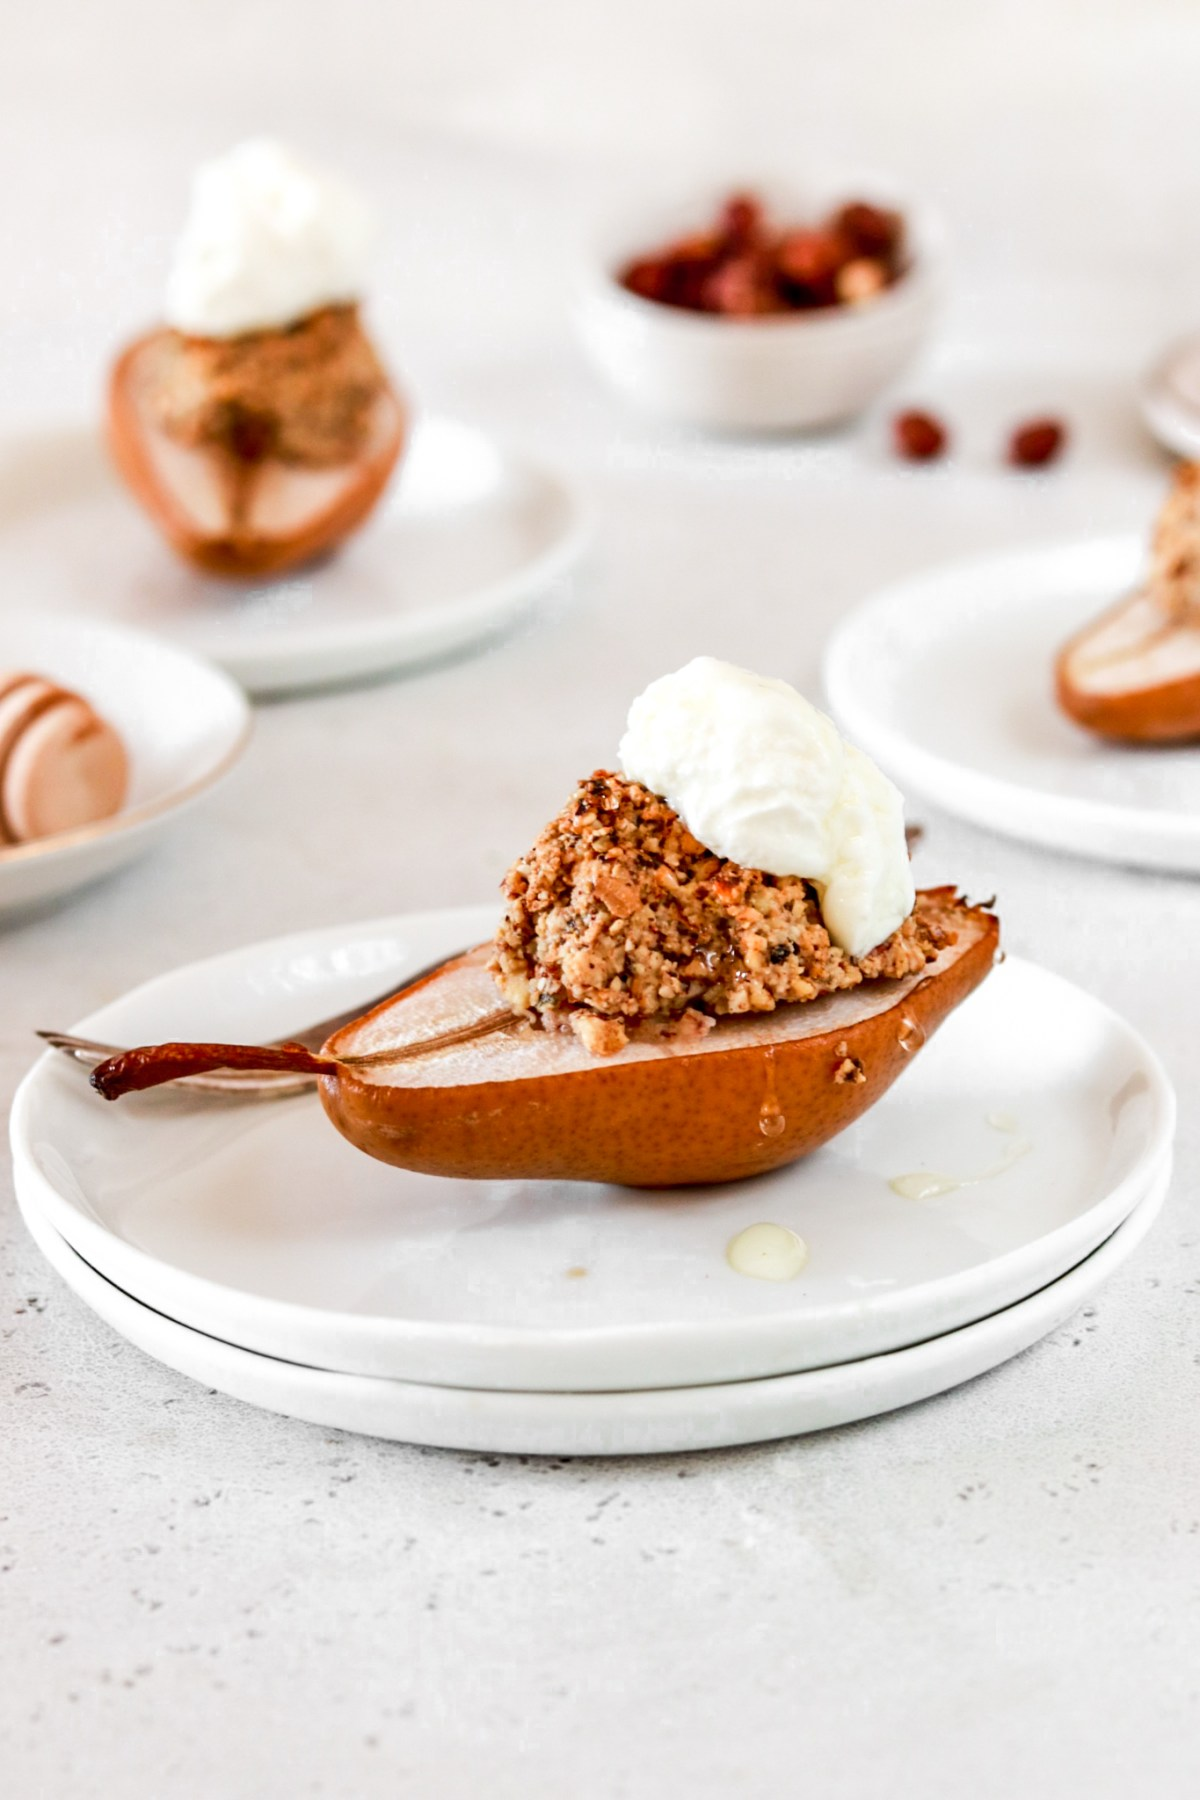 Granola & Nut Stuffed Baked Pears From Front